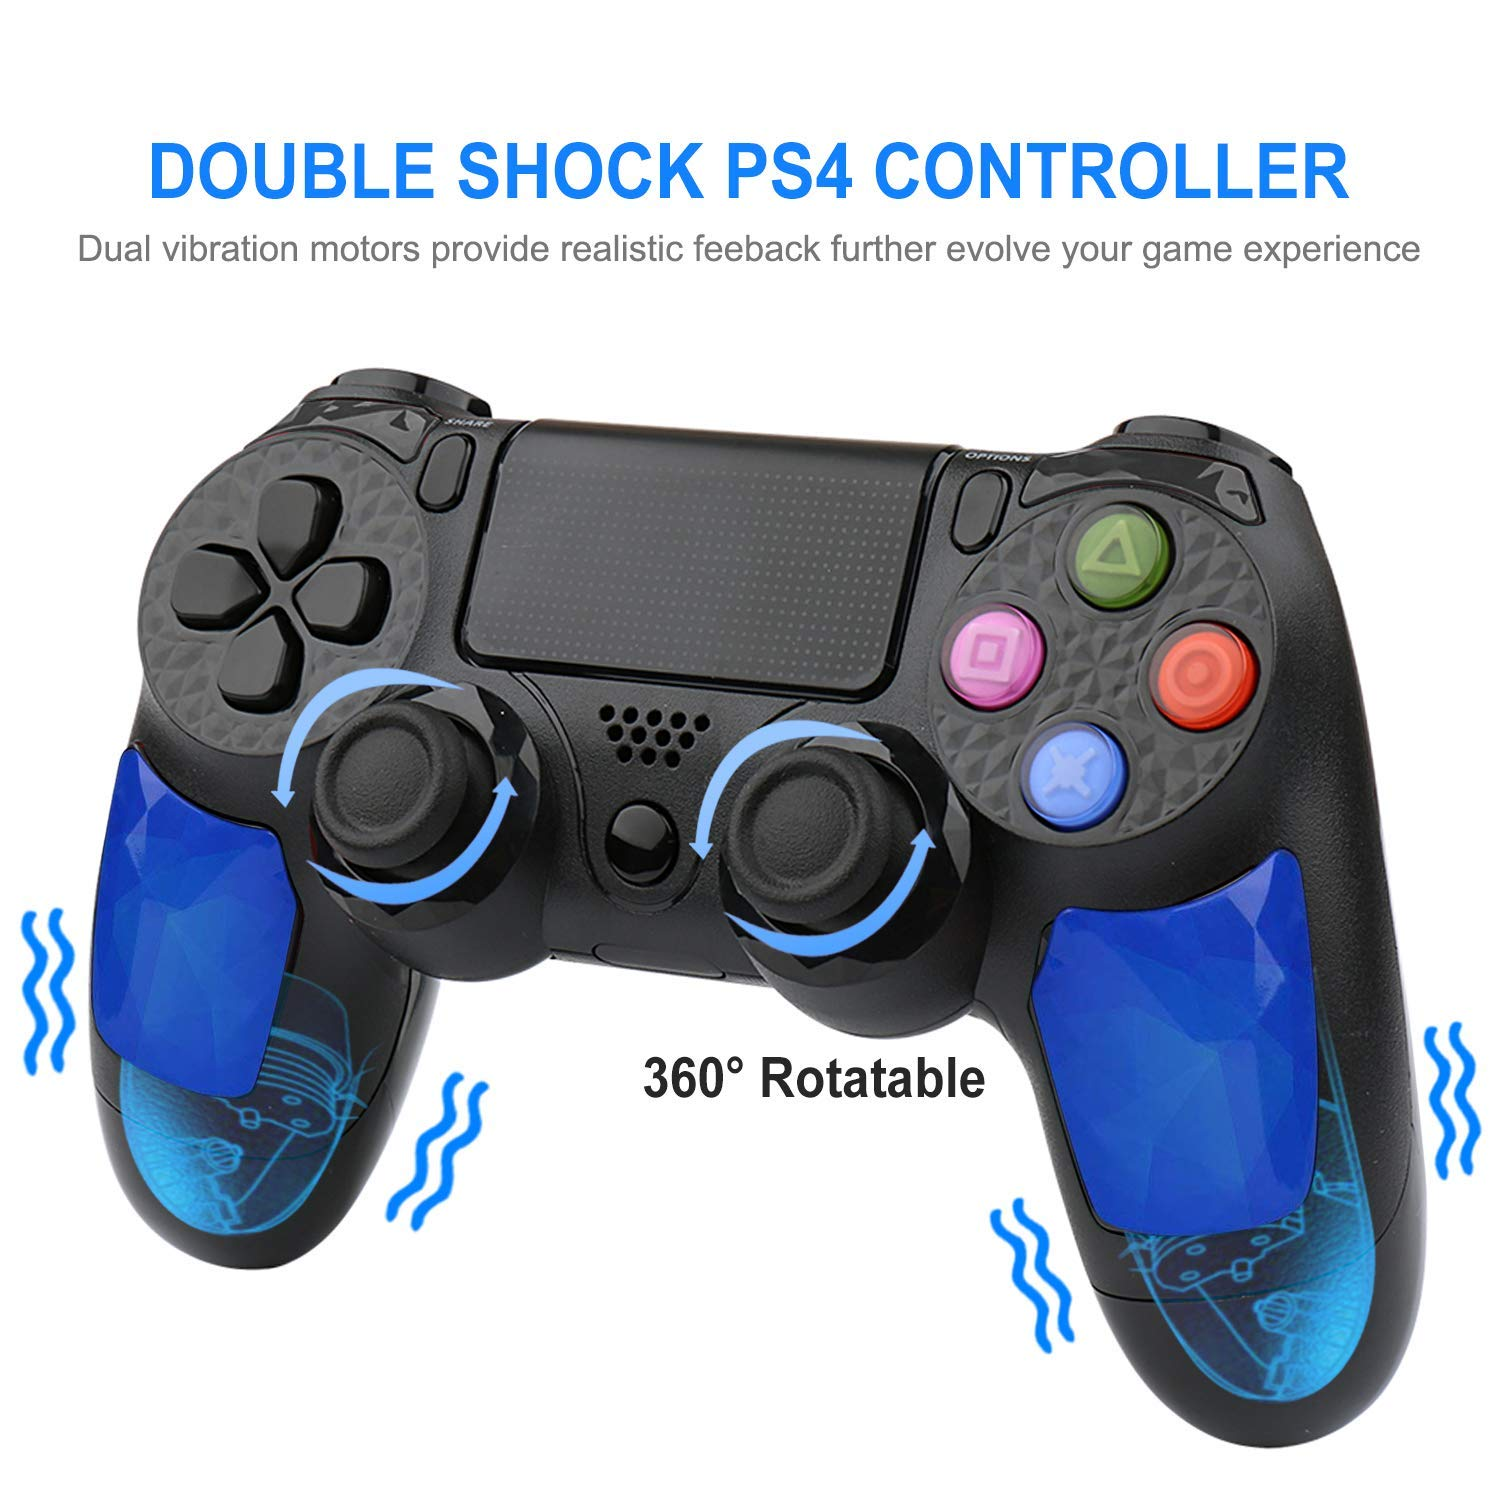 Controller Custodia Protettiva Per Playstation Controller 4 1 Faceplates, Decals & Stickers Gen Blu Consolle With The Best Service